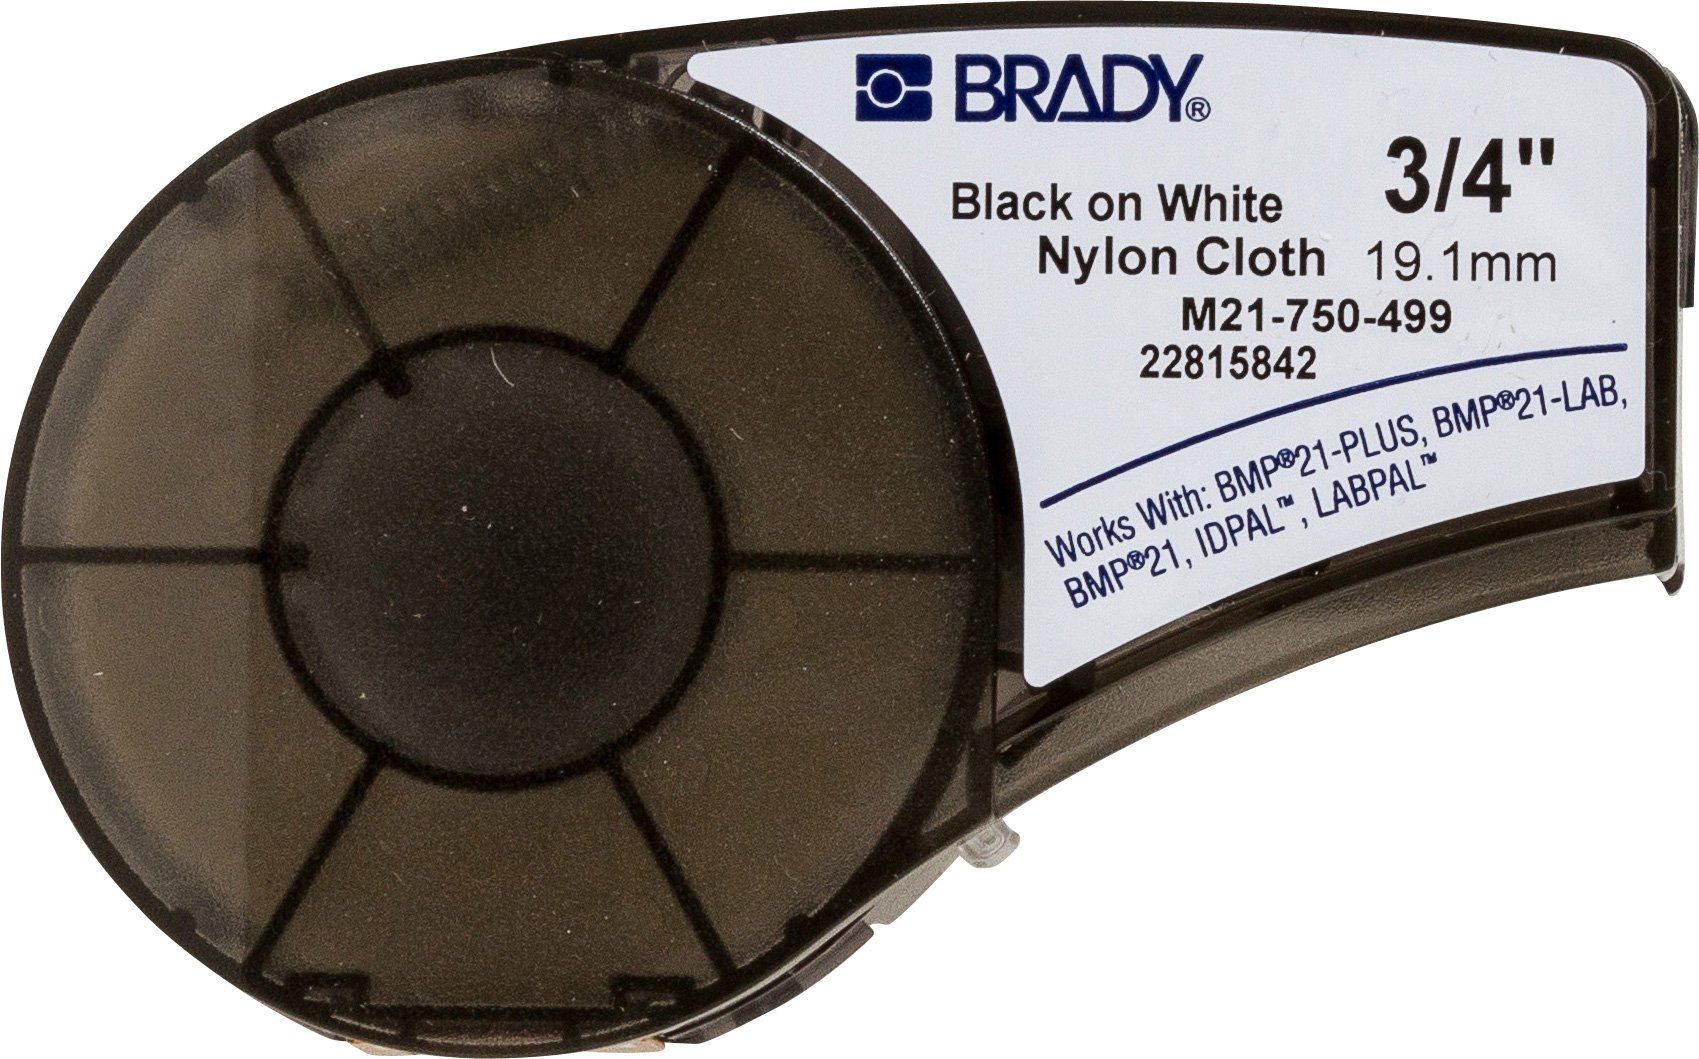 Brady High Adhesion Cloth Label Tape (M21-750-499) - Black On White Nylon - Compatible with BMP21-PLUS, ID PAL, and LABPAL Printers - 16' Length, 0.75'' Width